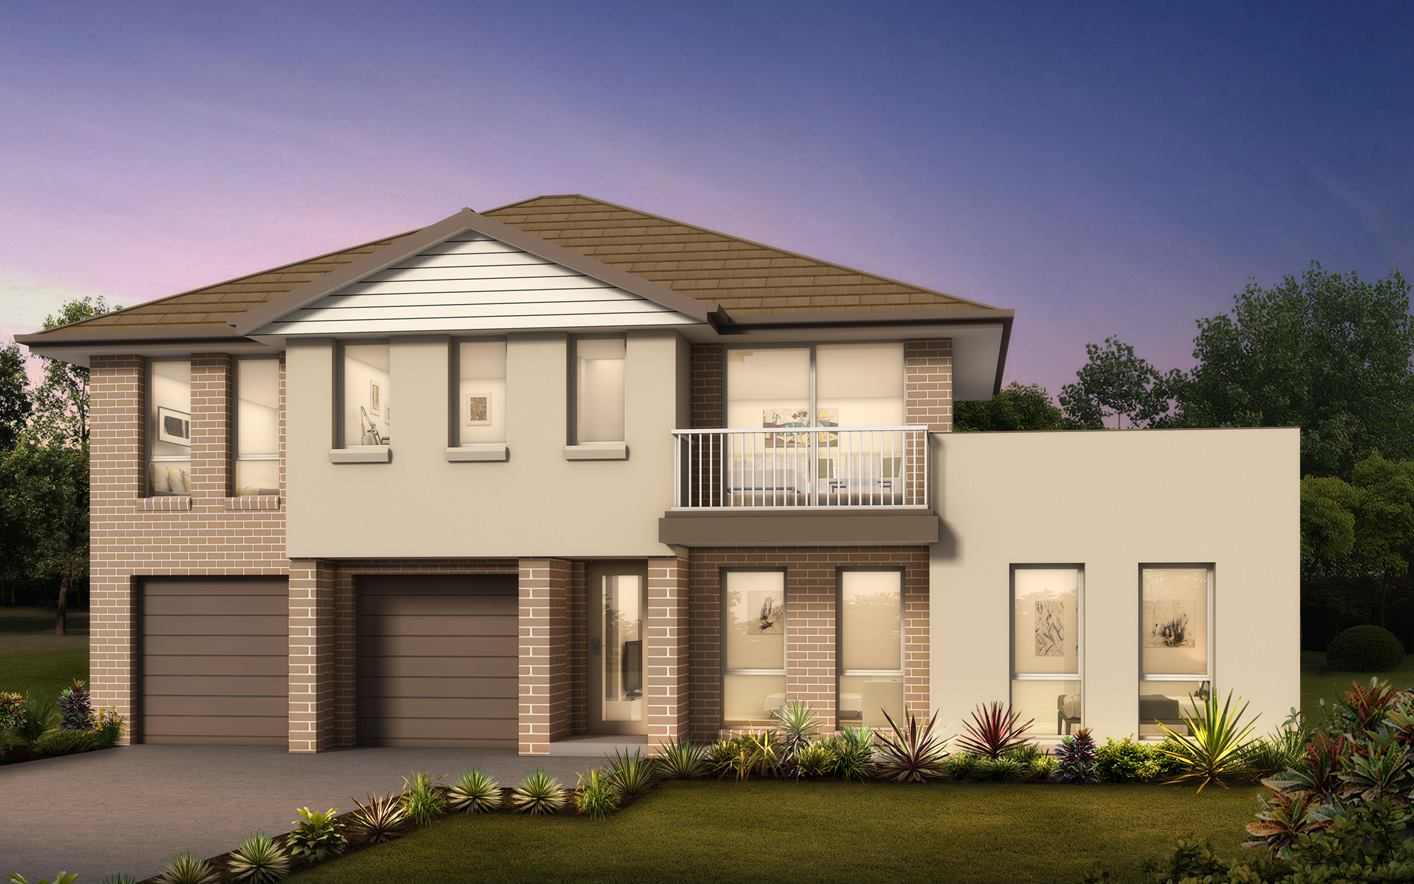 Medway Home Design with Regal Facade